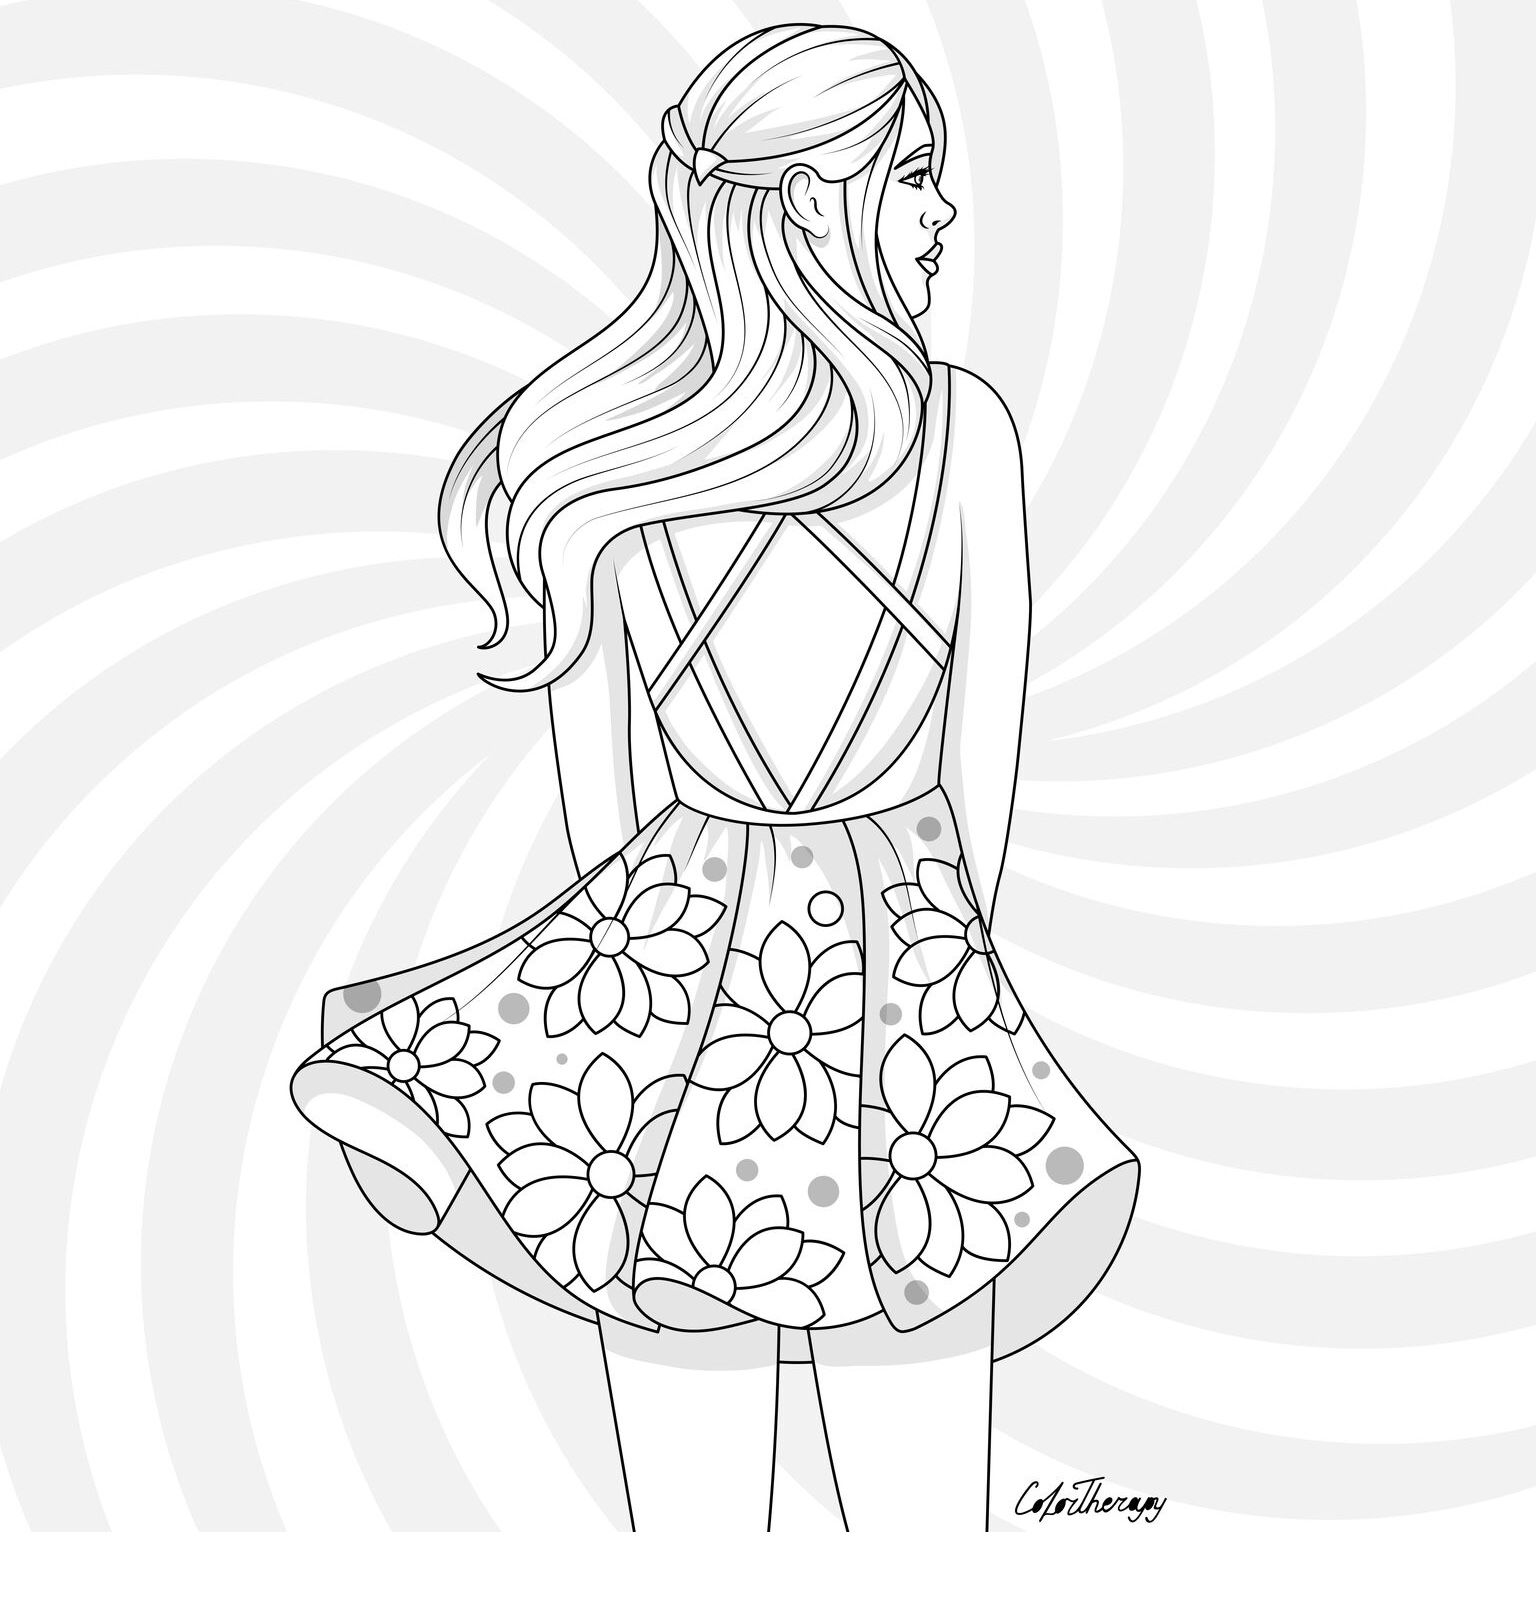 The Sneak Peek For The Next Gift Of The Day Tomorrow Do You Like This One Girl Summery Floral People Coloring Pages Coloring Book Art Coloring Pages [ 1599 x 1536 Pixel ]